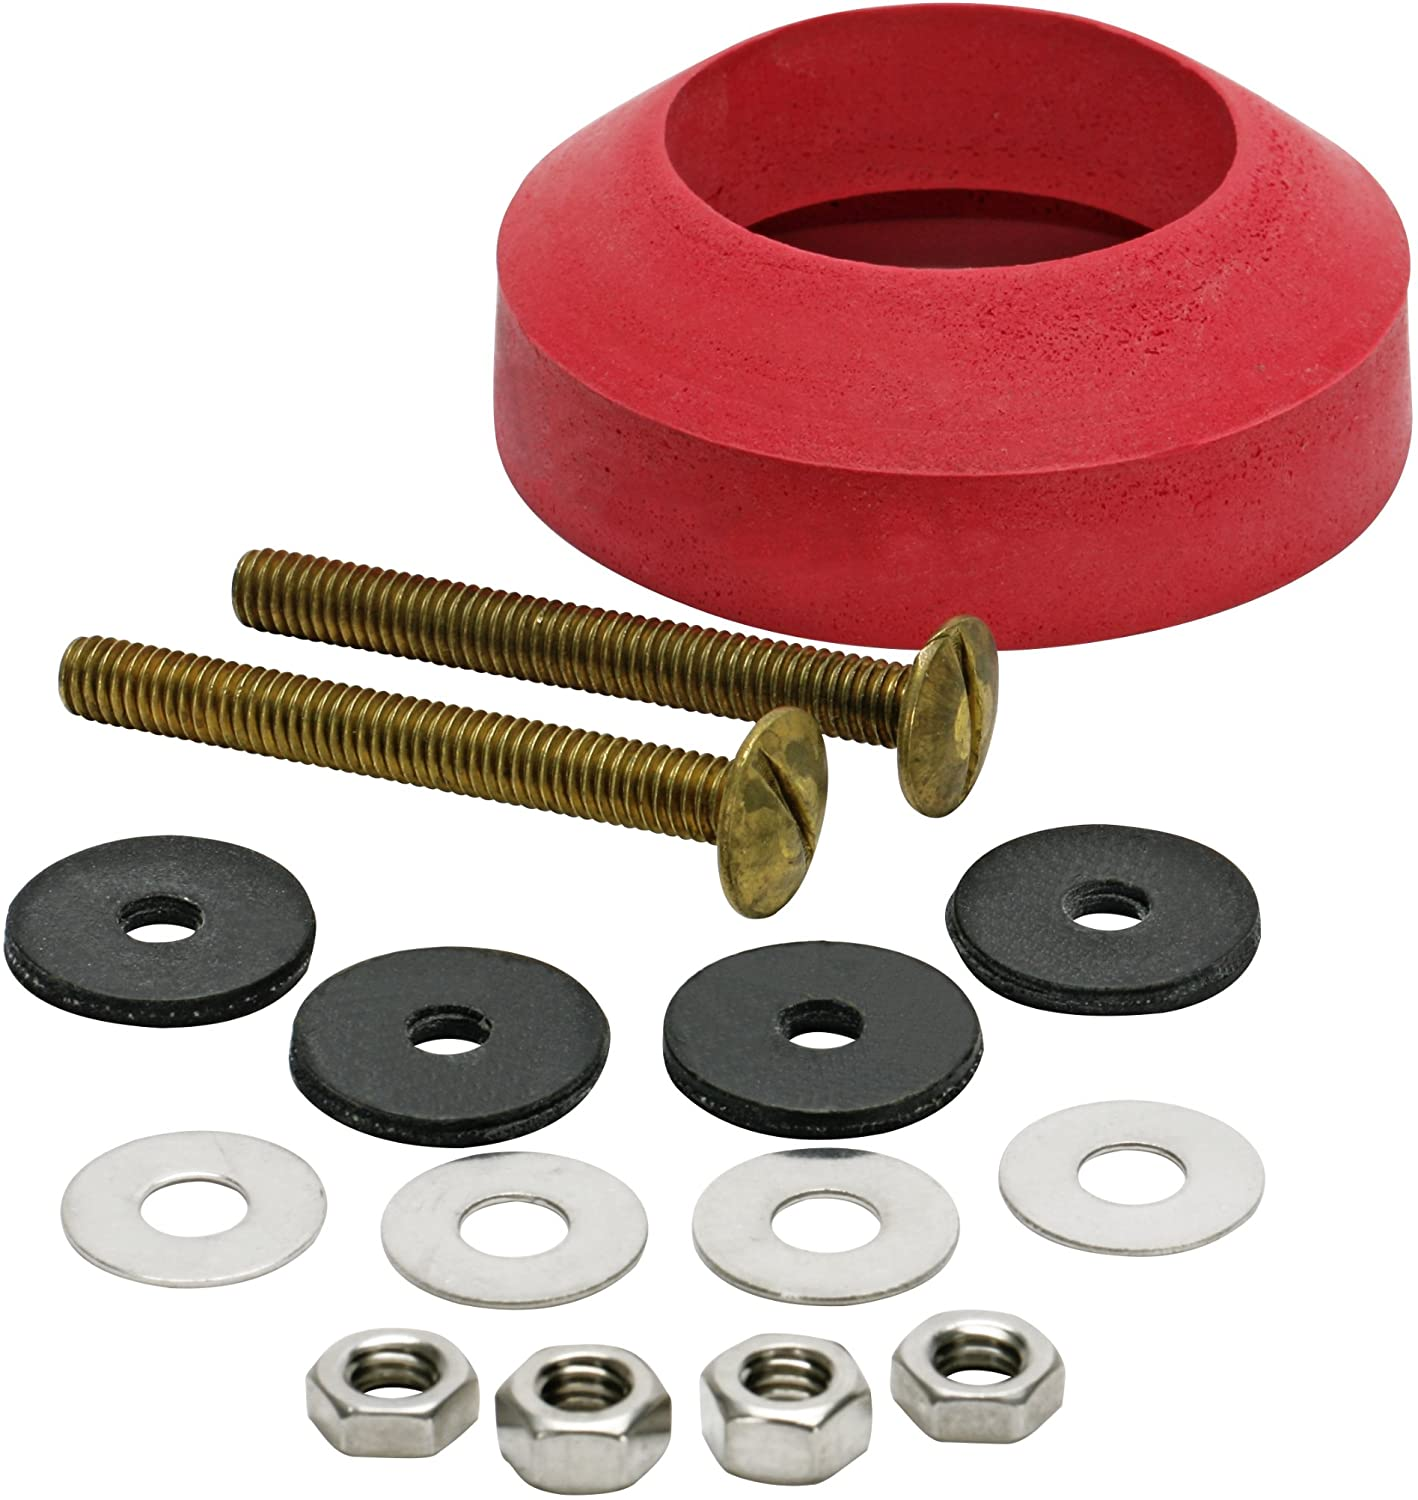 Brass and Rubber Tank to Bowl Kit for Use with Universal Fit